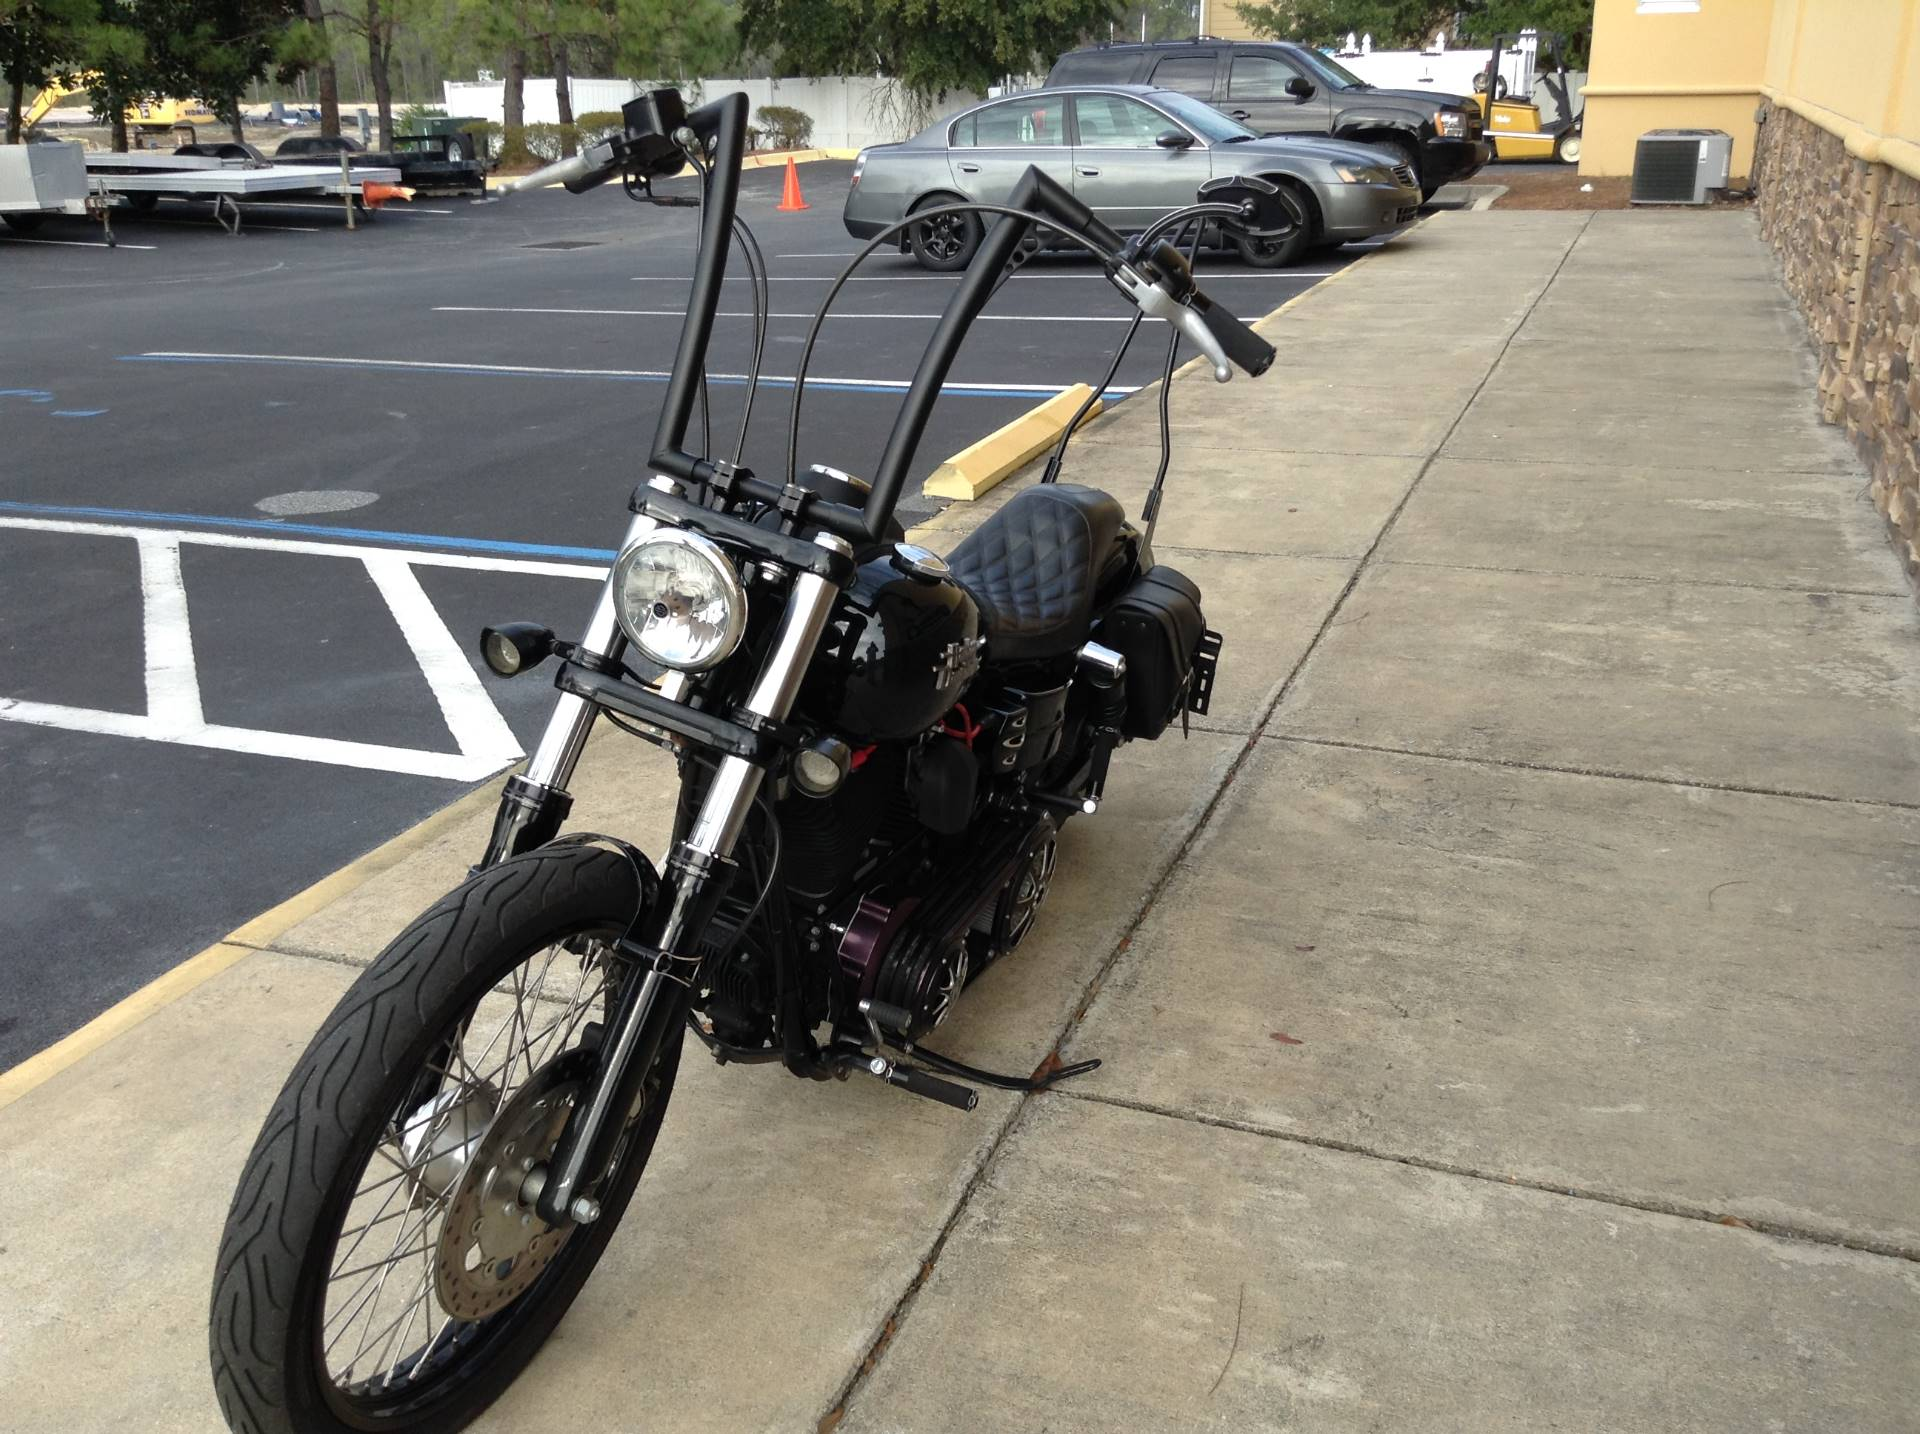 2014 Harley-Davidson STREET BOB in Panama City Beach, Florida - Photo 9